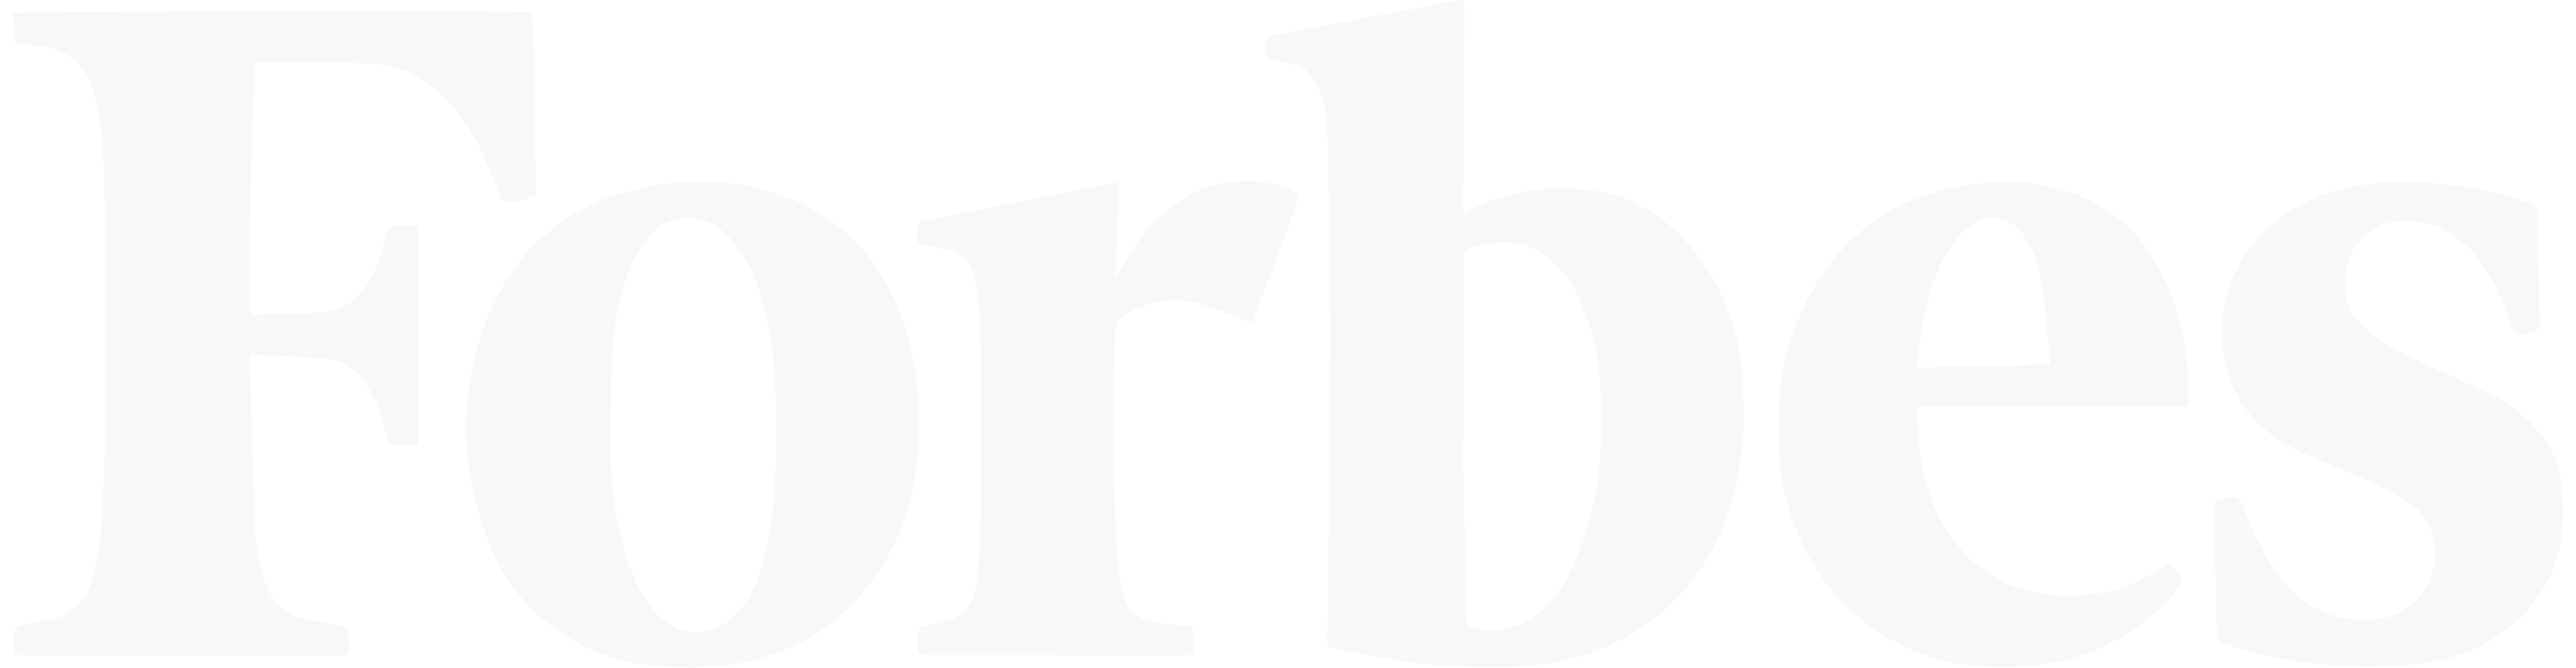 A Forbes logo, all text.